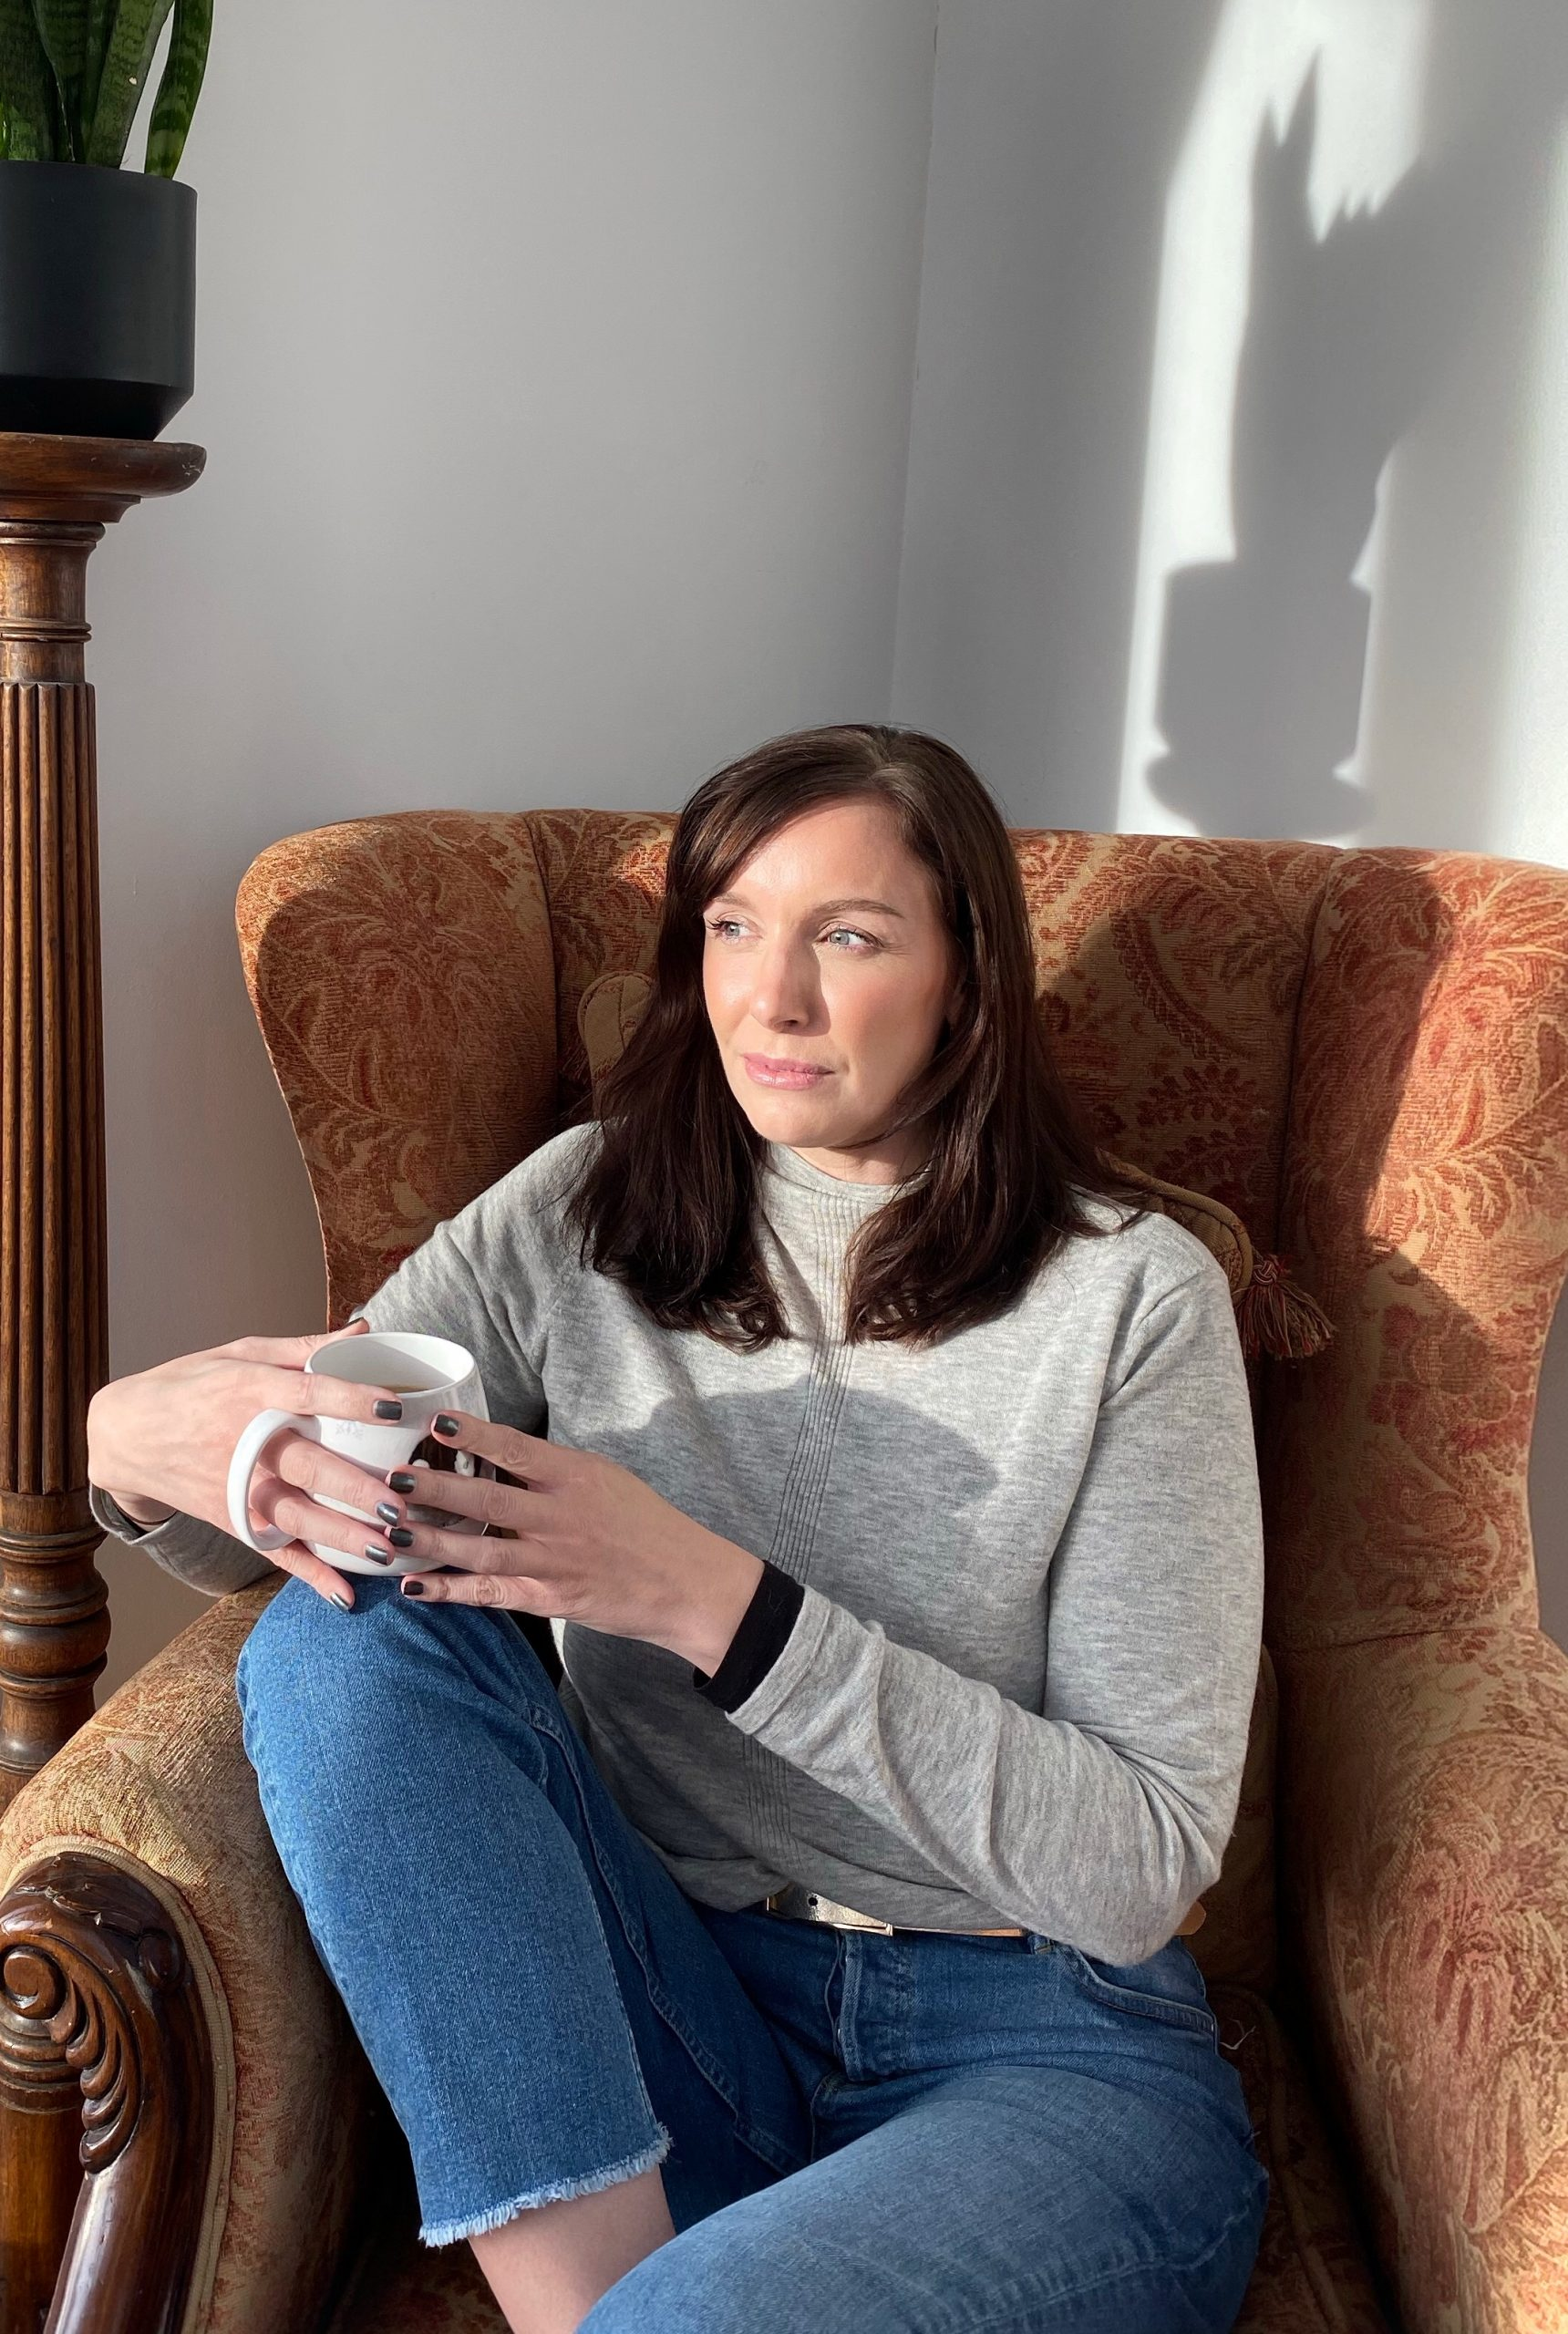 Woman with brunette shoulder length hair sits in an air chair looking aside while holding a cup of tea which is supported on her knee.